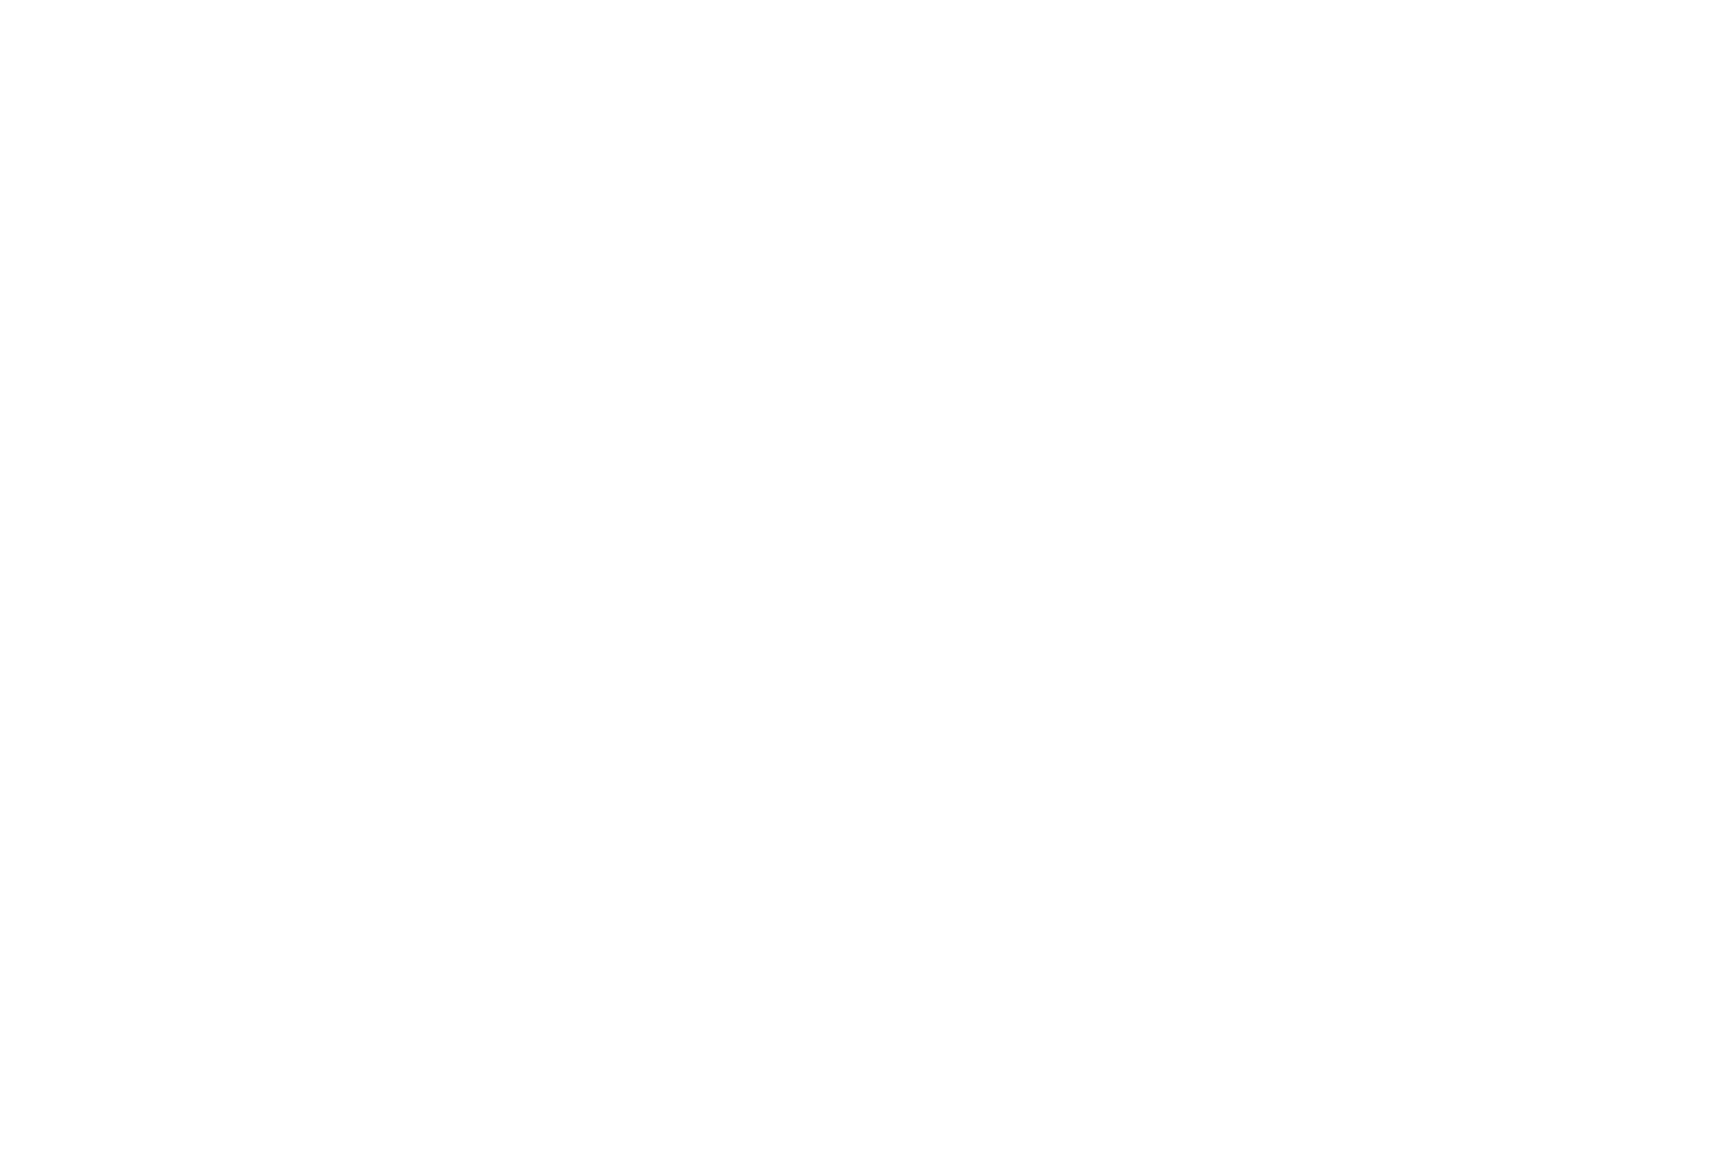 OFFICIALSELECTION-ChicagoIndieFilmAwards-2021 (white)